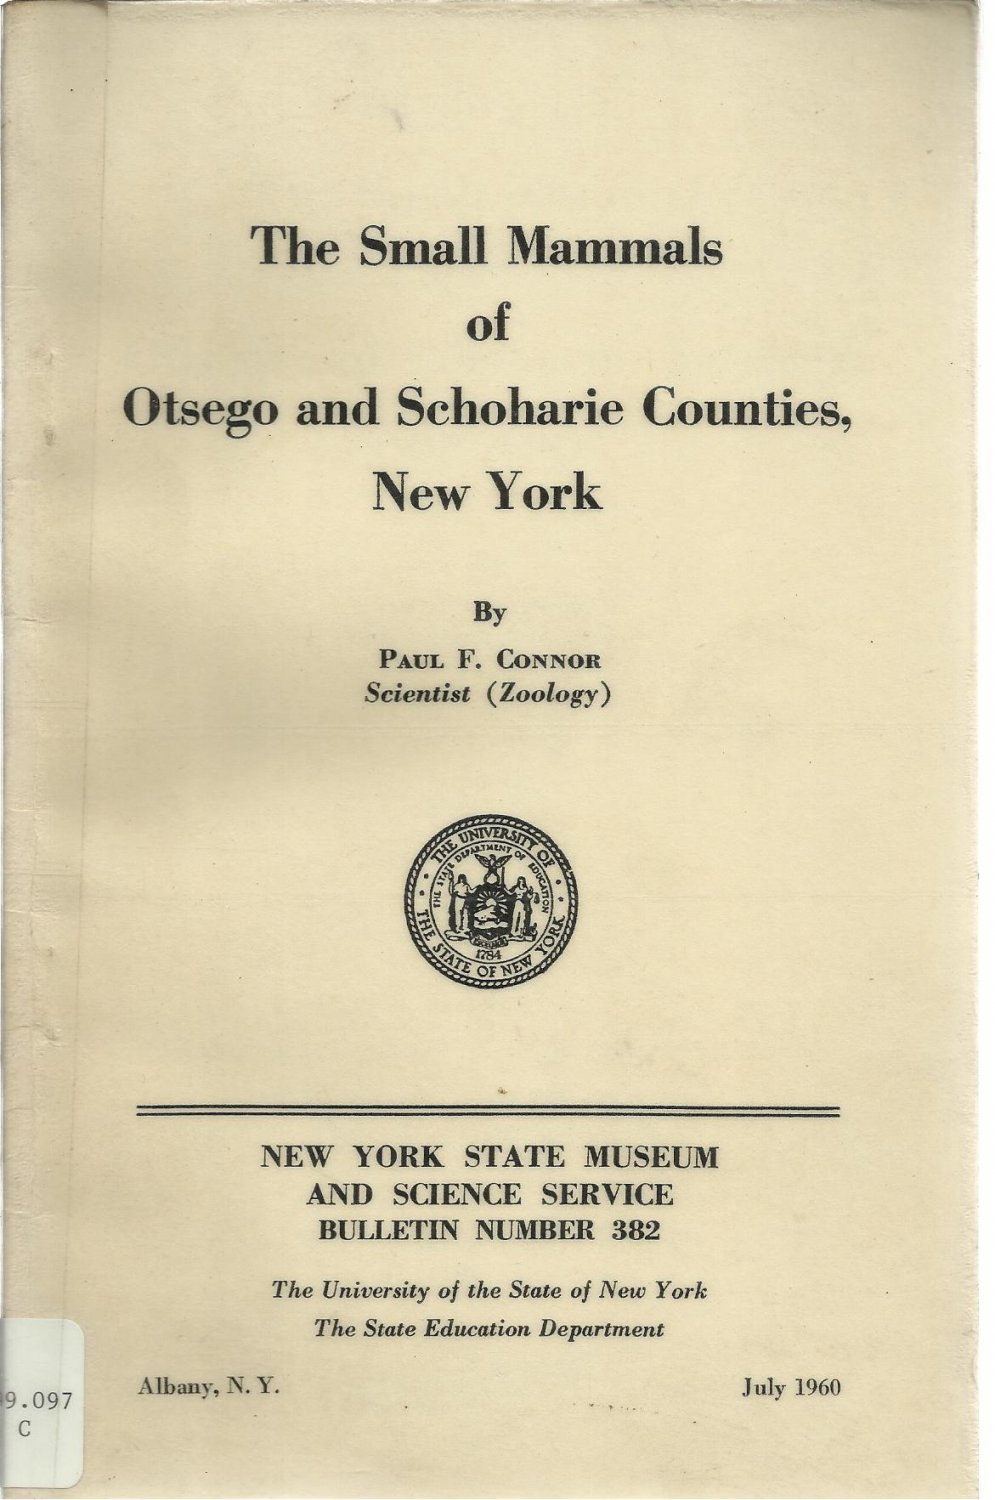 Small Mammals of Otsego and Schoharie Counties New York